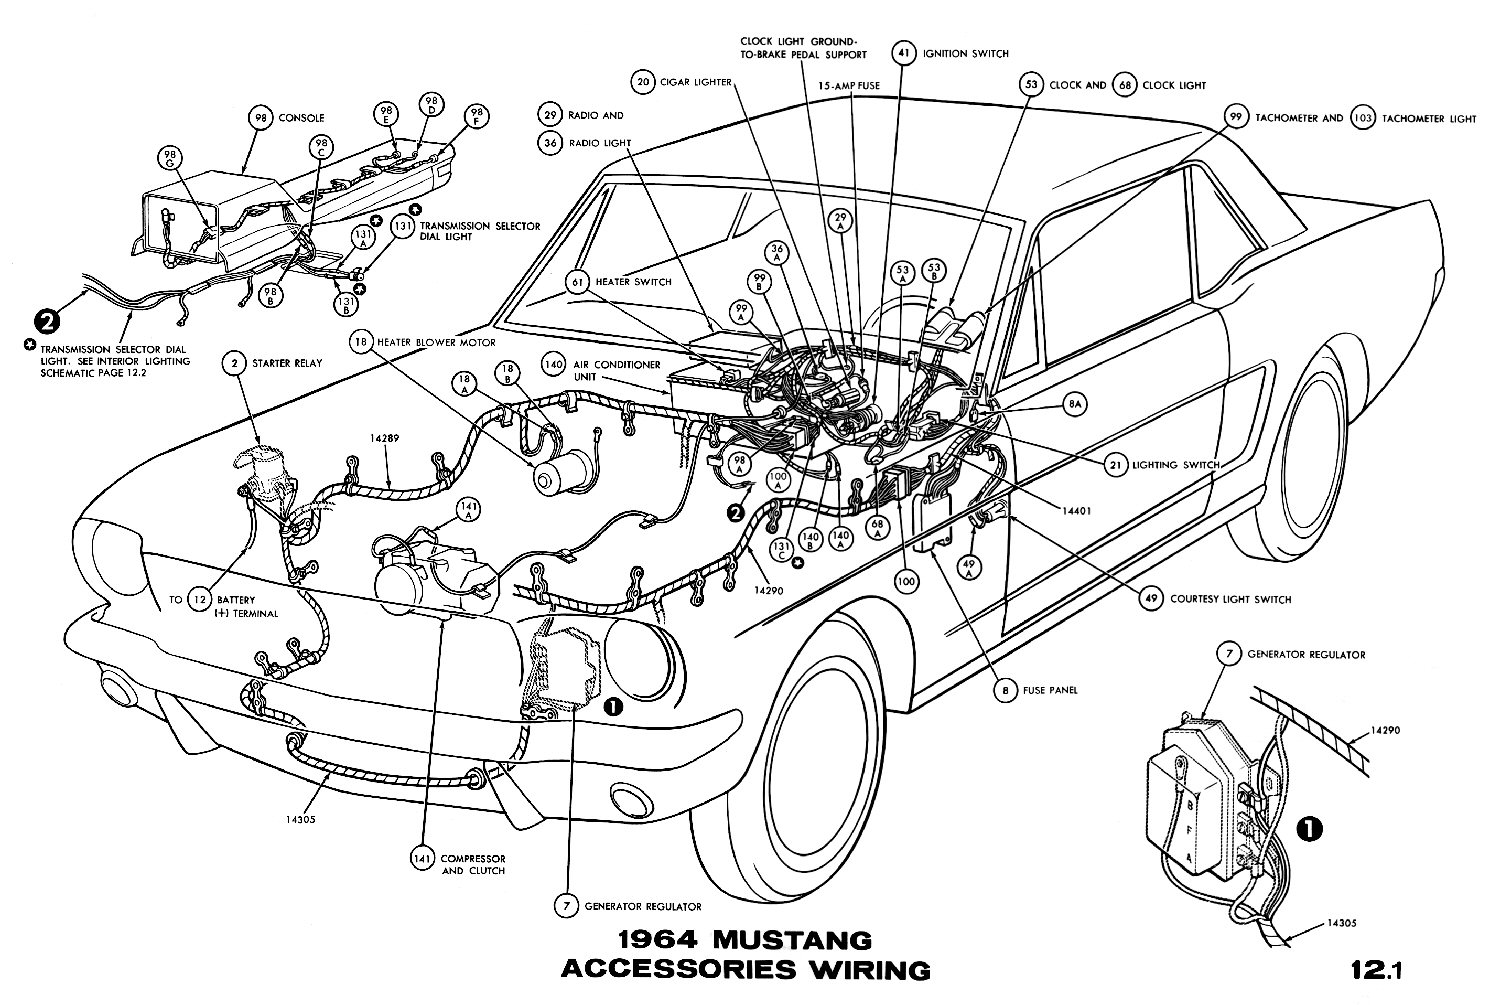 1964 Mustang Fuse Diagram Wiring Harness 2005 Ford Panel 1 2 Box Image Details 05 Gt